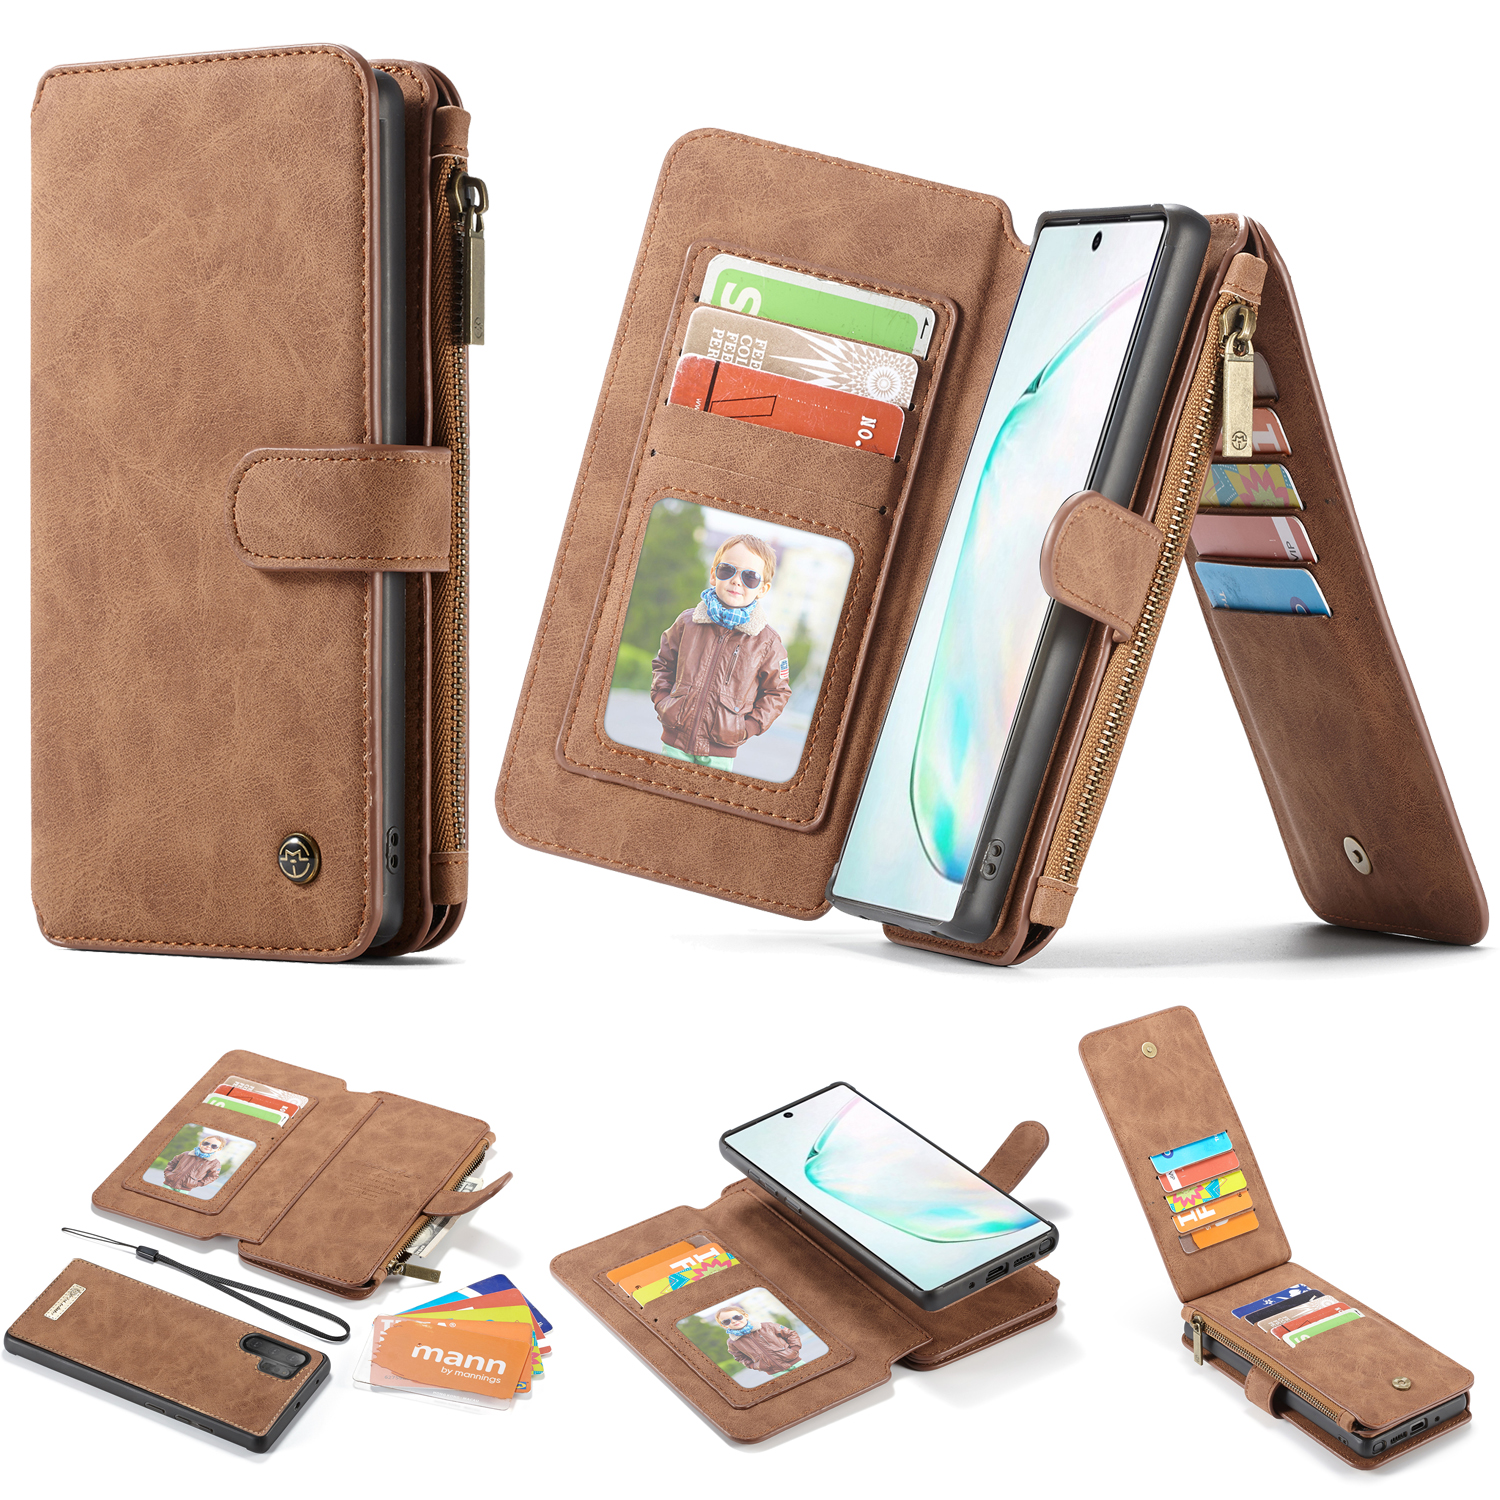 Note 10 Zipper Wallet Credit Card Slot Up Down Flip Stand PU Leather Detachable 2 in 1 Case for Samsung Galaxy Note 10+